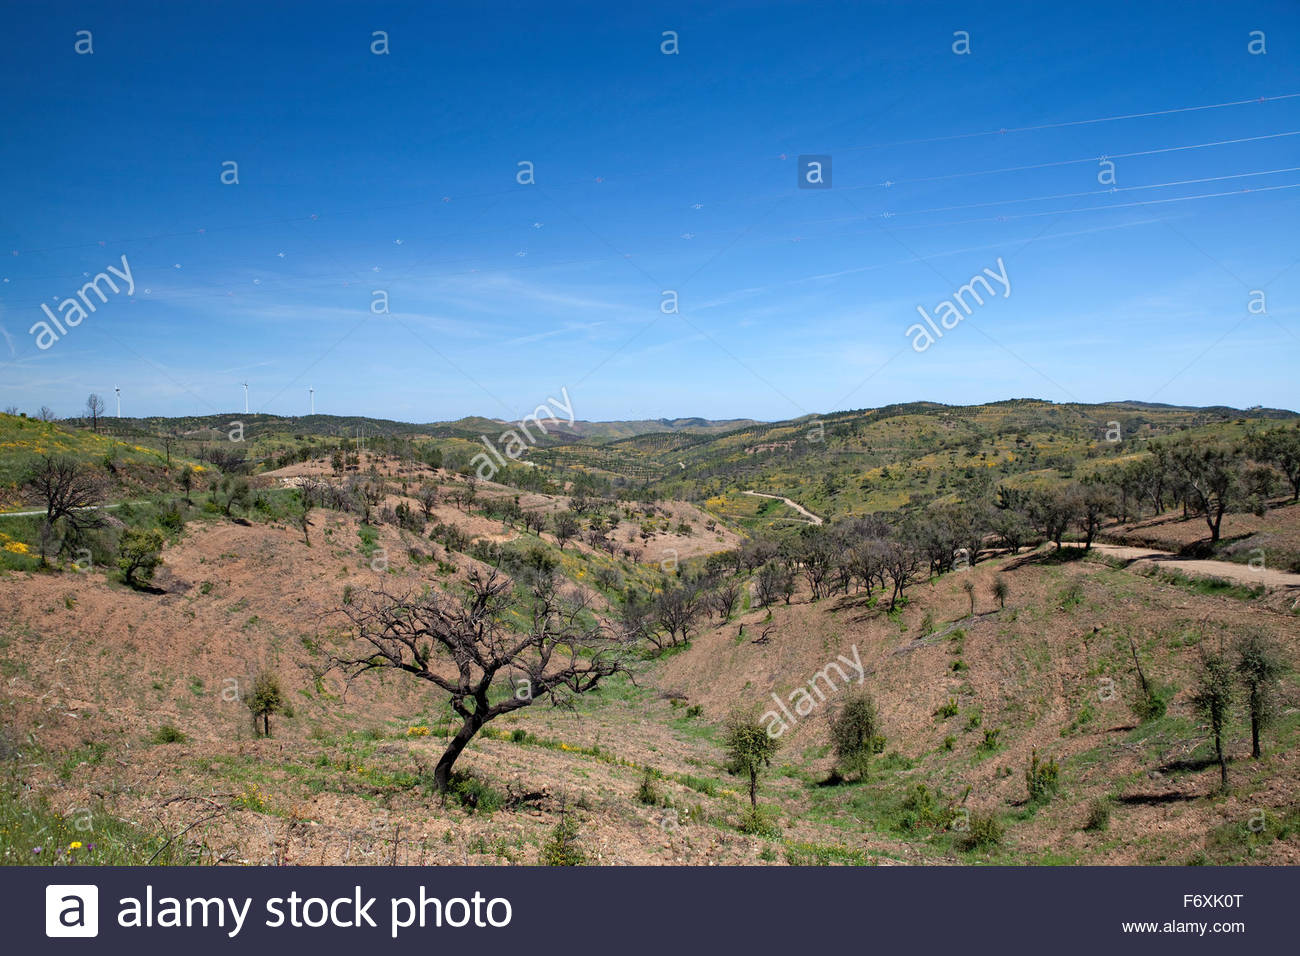 The hills of Portugal - Stock Image